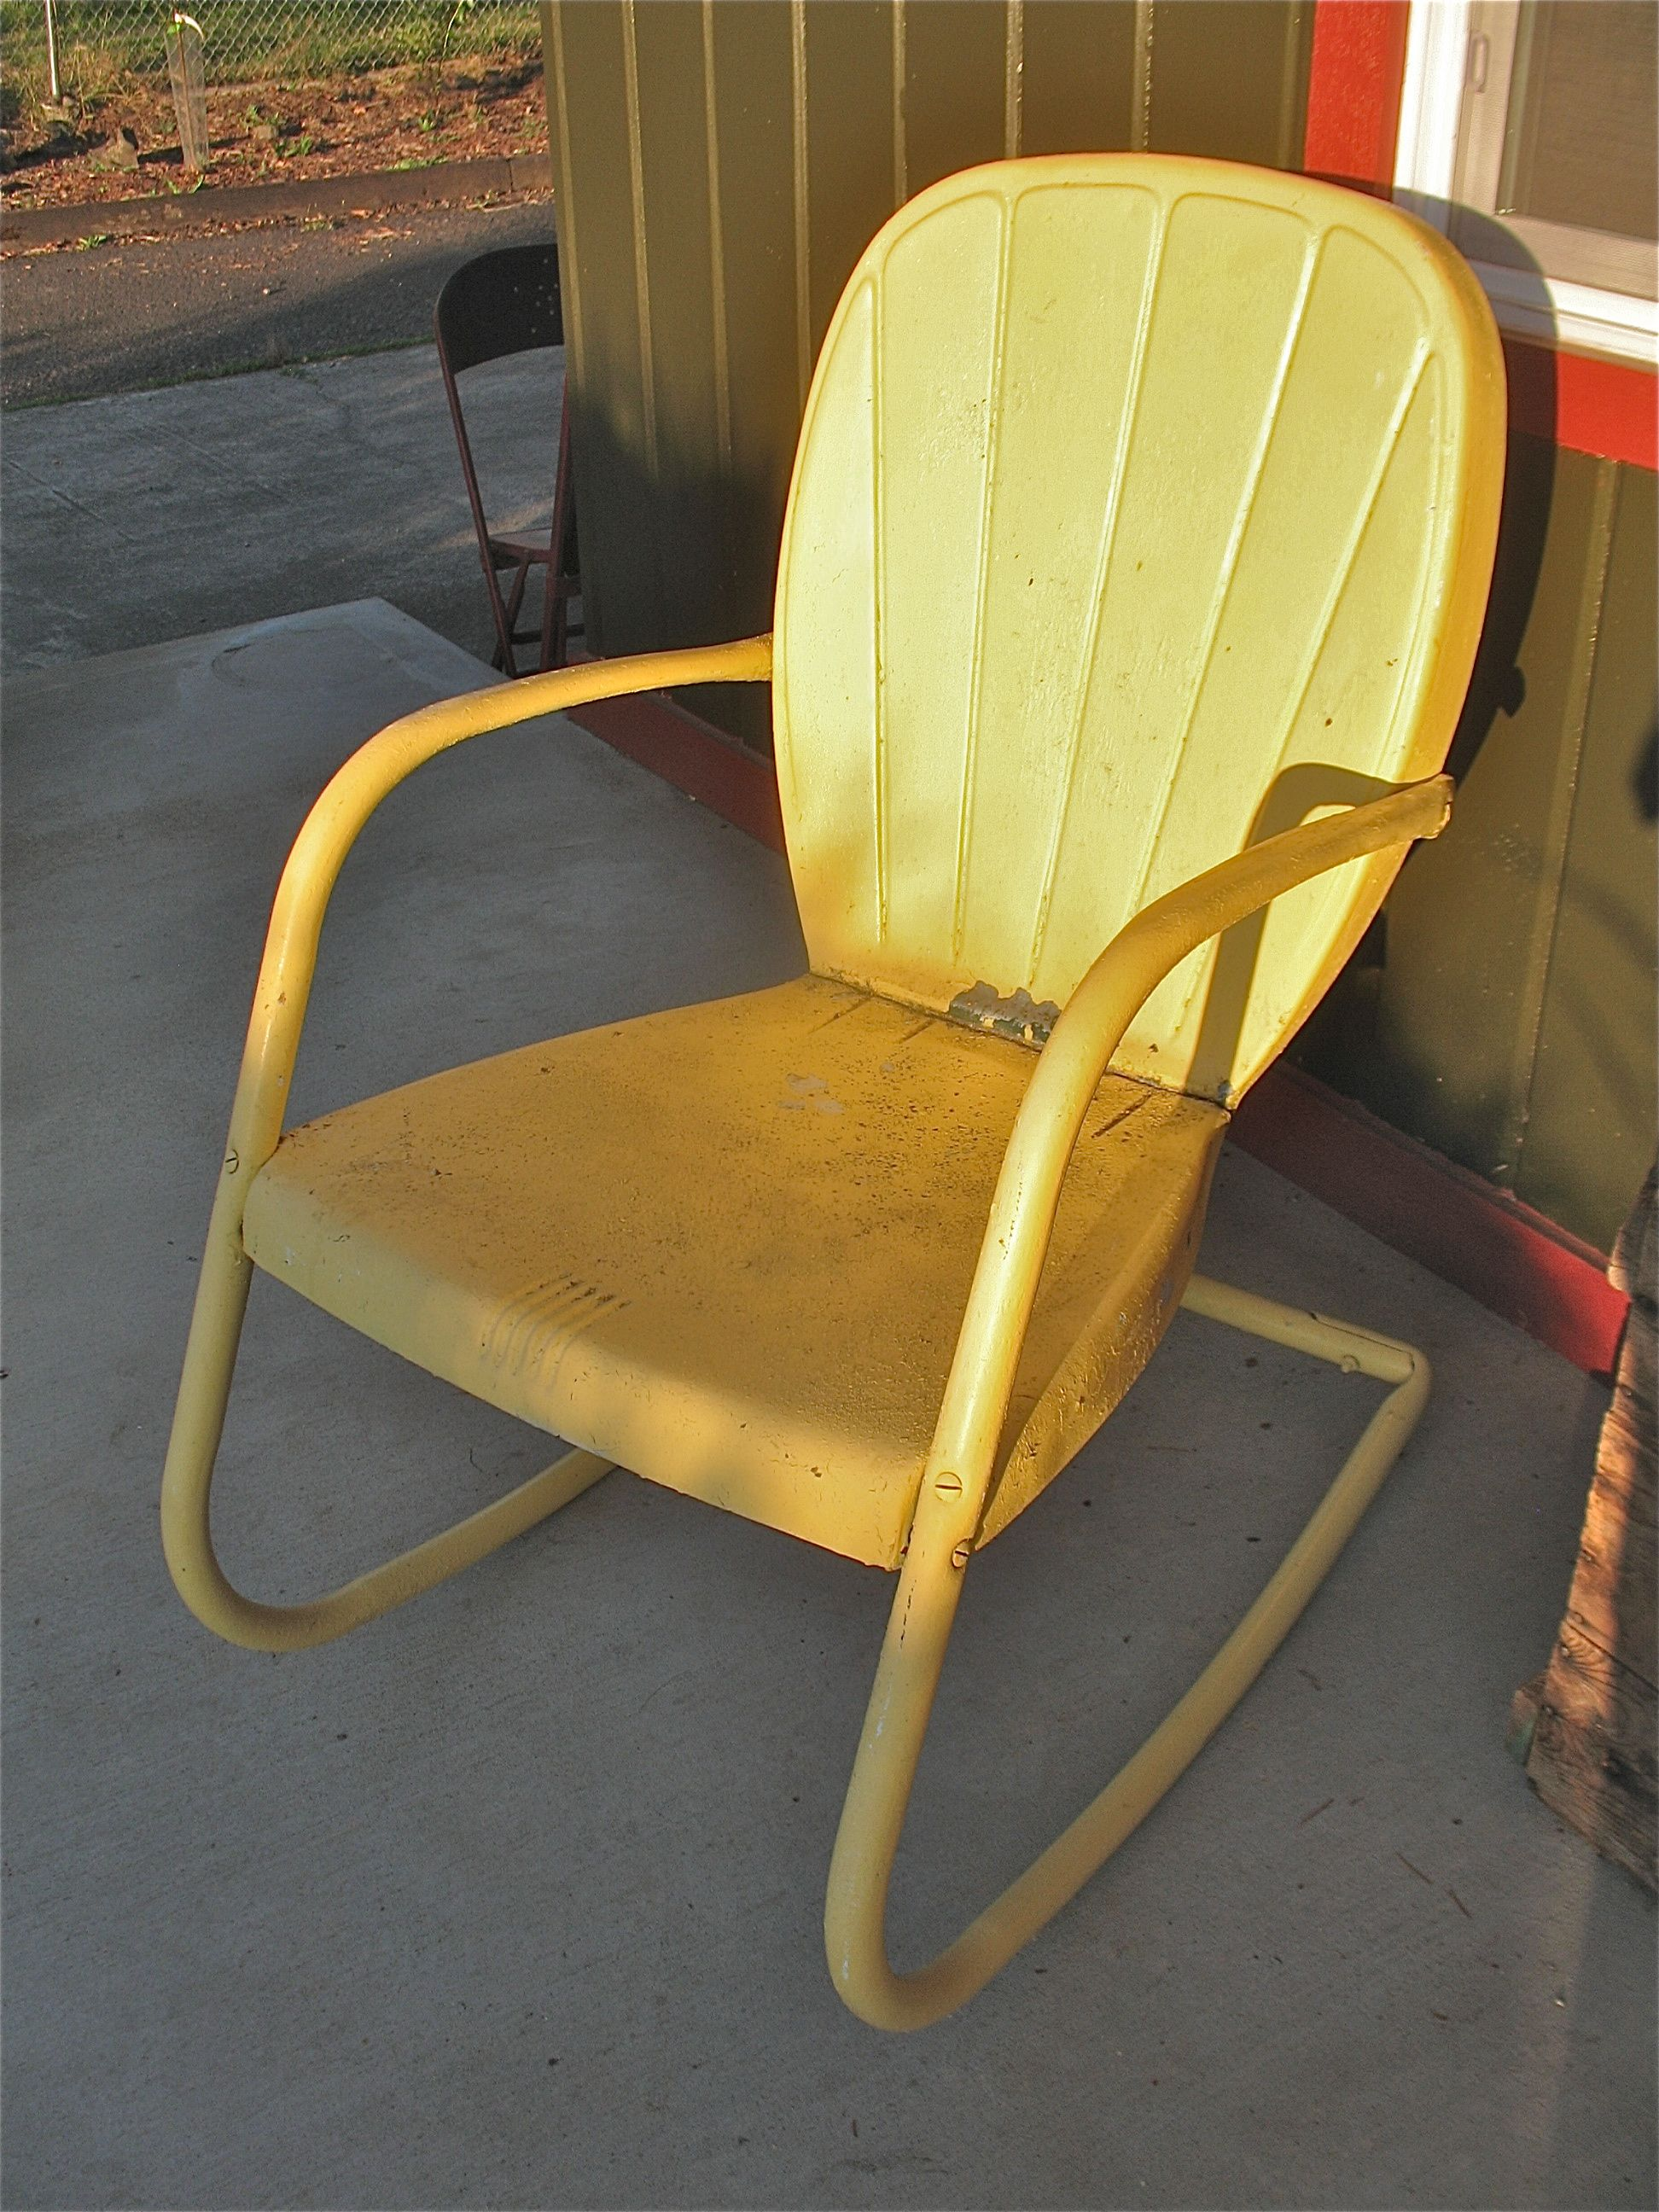 Vintage metal clamshell back motel chairs.......This one